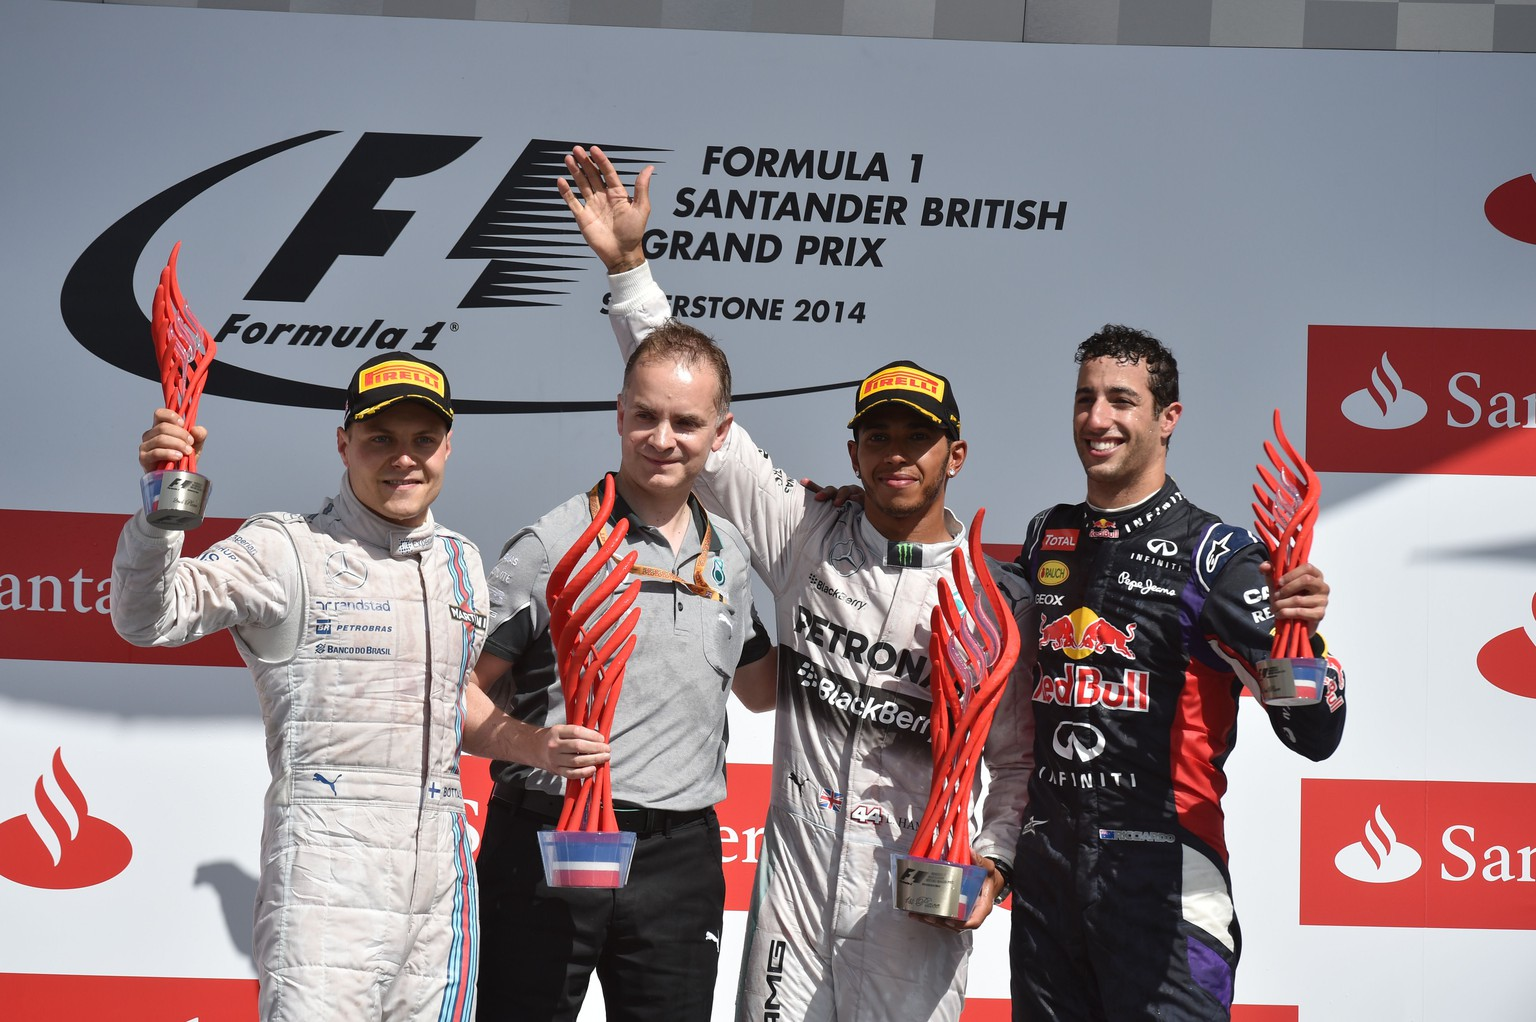 Mercedes-AMG's British driver Lewis Hamilton (2-R) celebrates on the podium along with Mercedes-AMG's German driver Nico Rosberg (L) and Red Bull Racing's Australian driver Daniel Ricciardo after winning the British Formula One Grand Prix at the Silverstone circuit in Silverstone on July 6, 2014. AFP PHOTO / DIMITAR DILKOFF